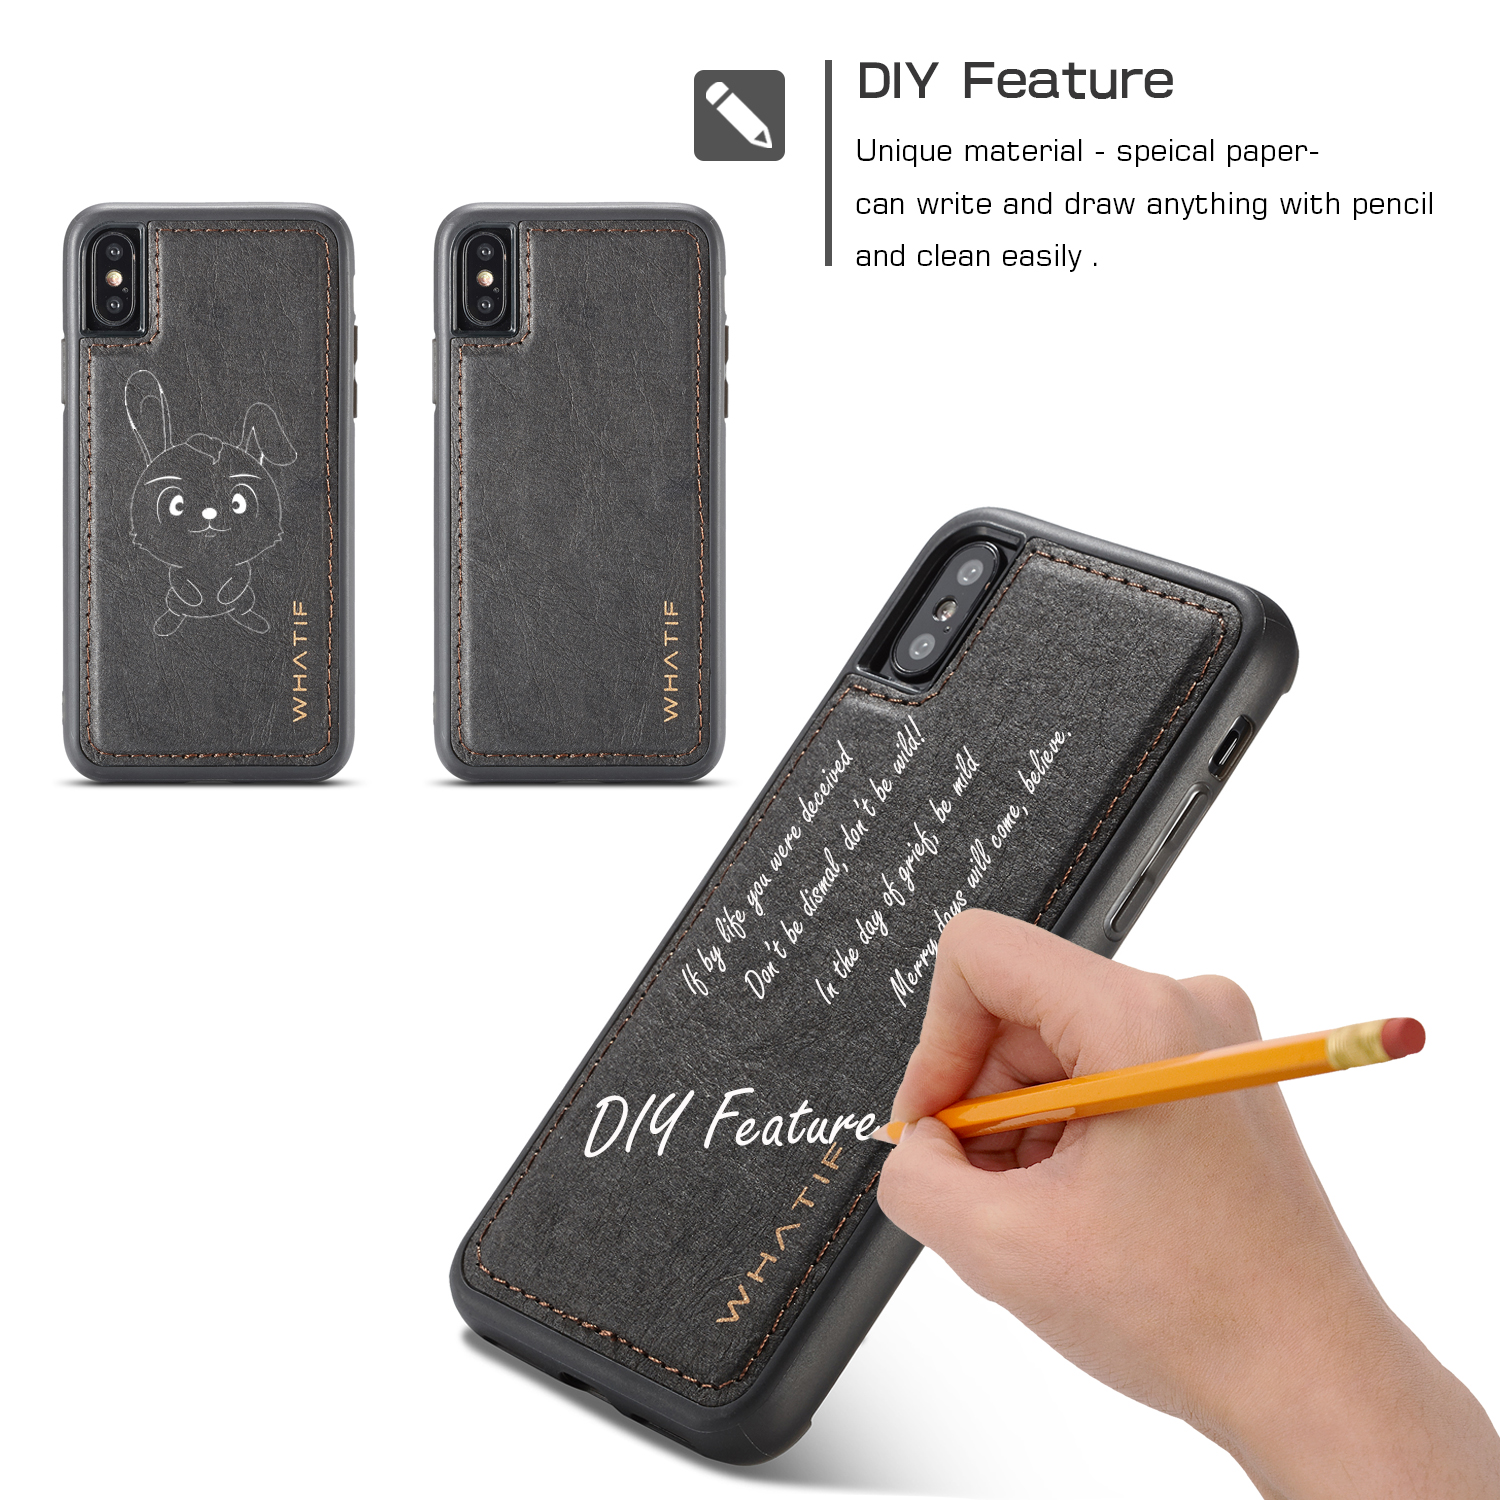 Waterproof Kraft Paper DIY Feature Case For iPhone Series/ X/8/8 Plus/7/7 Plus/6s/6s Plus/6/6 Plus